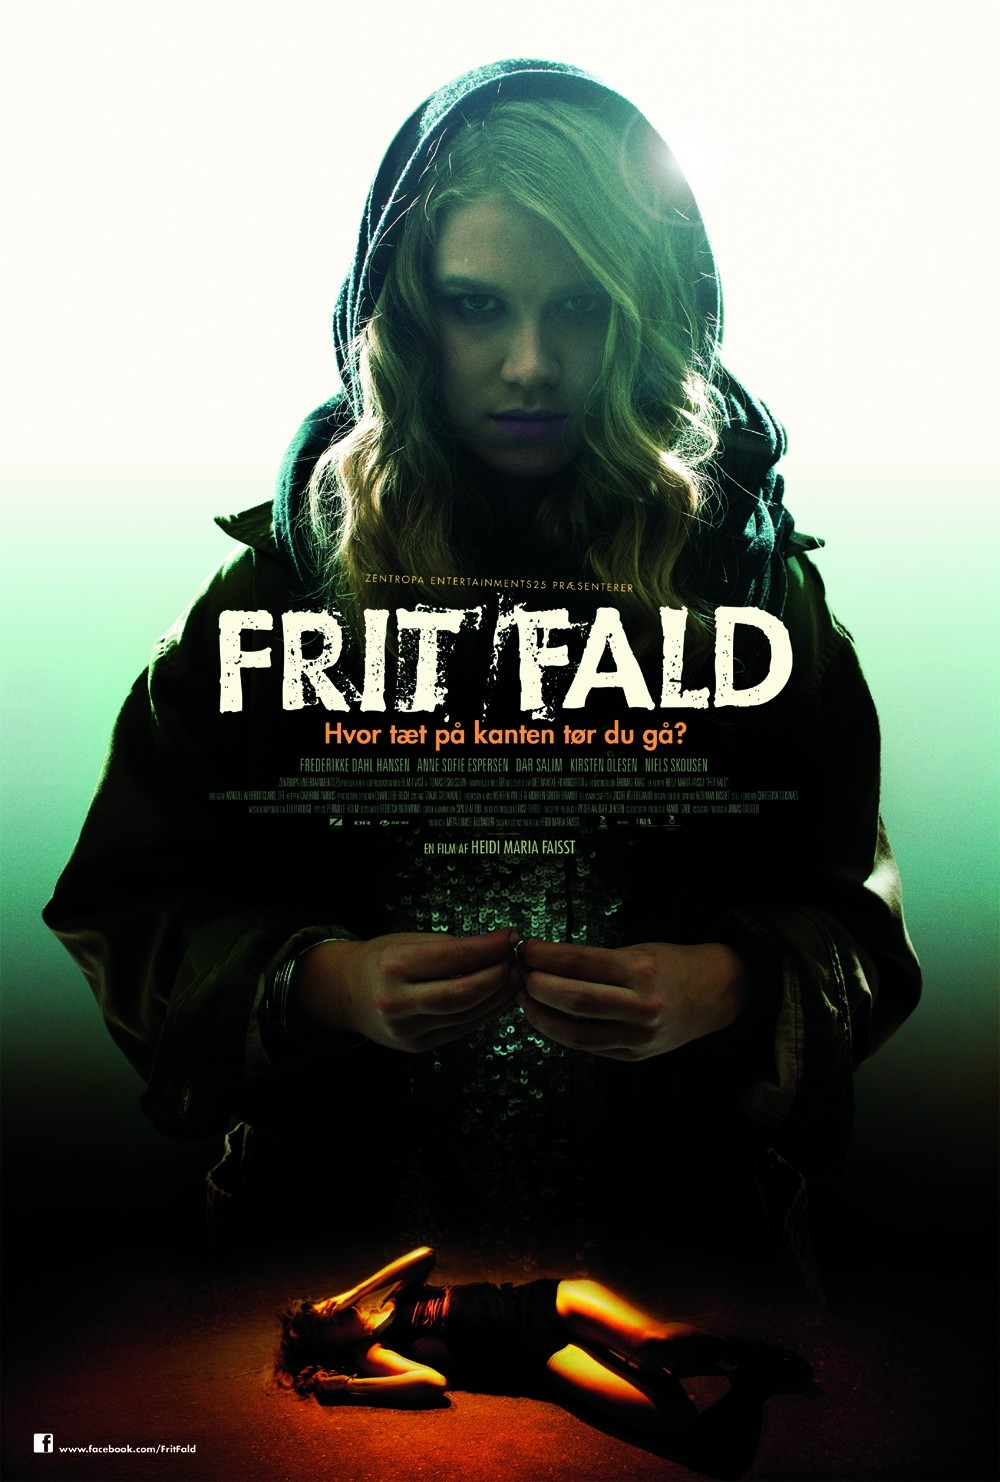 Extra Large Movie Poster Image for Frit fald